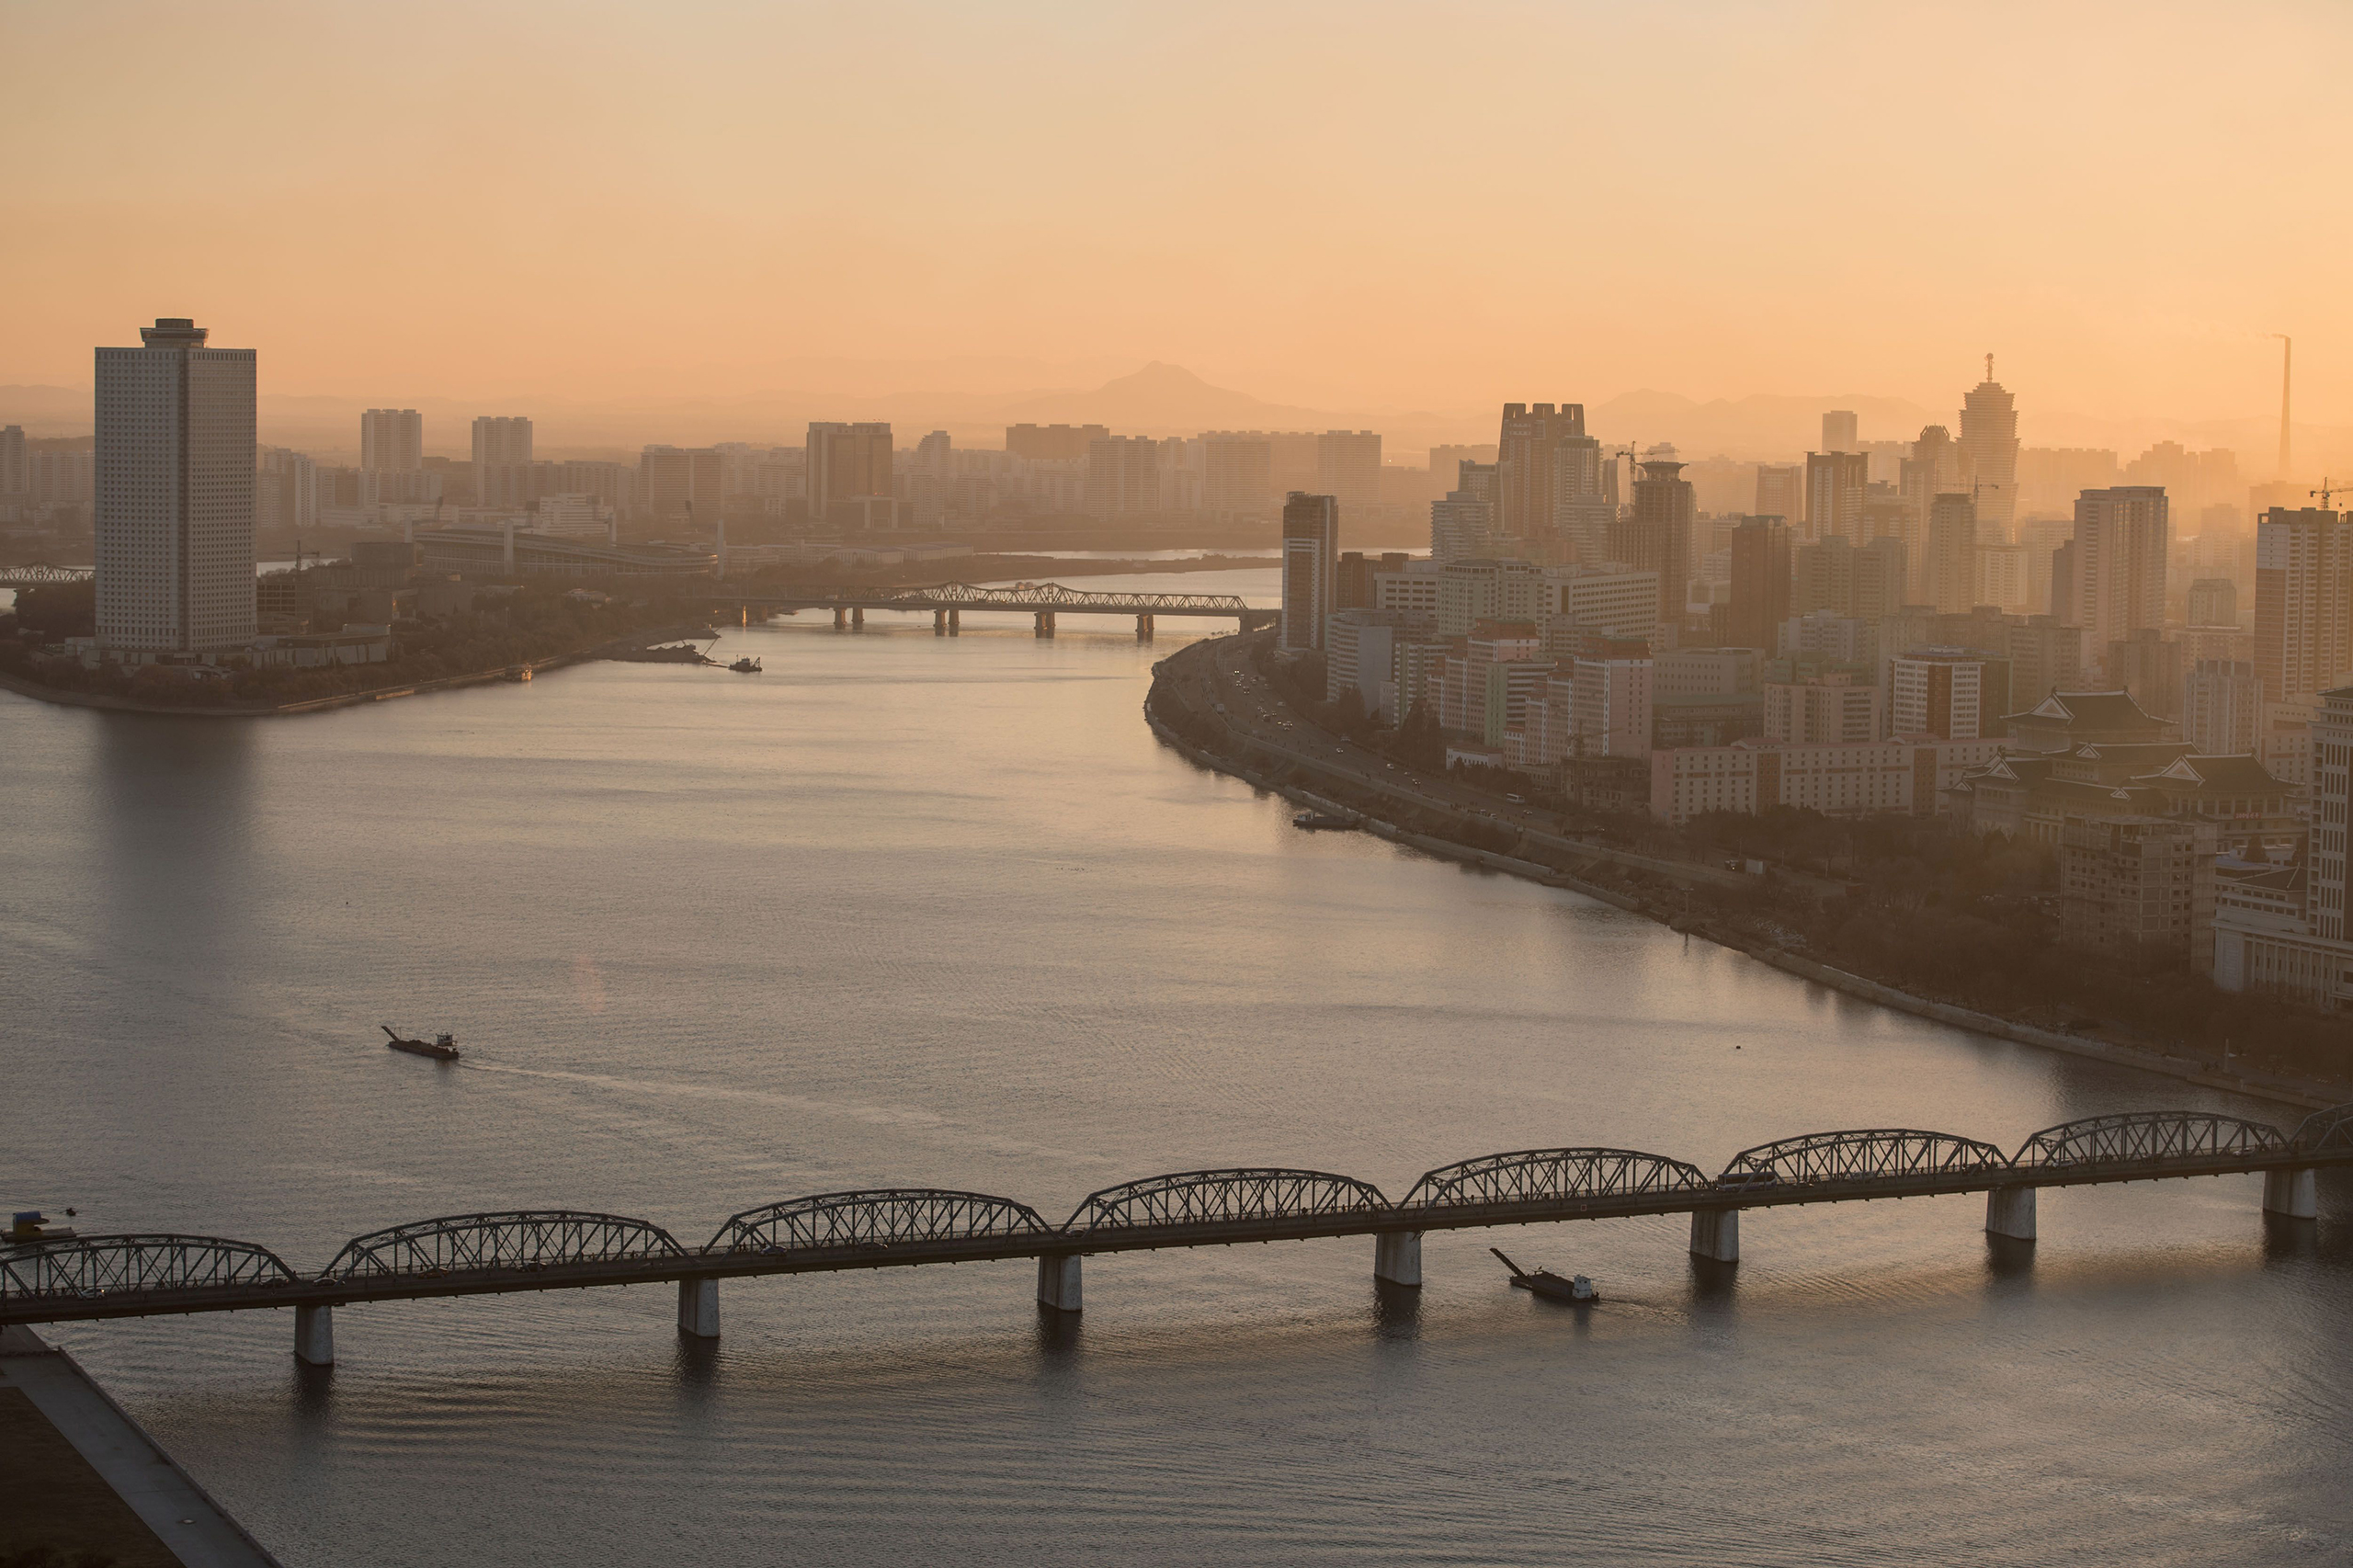 The Yanggakdo hotel, Taedong river and the Pyongyang city skyline on Nov. 28, 2016.